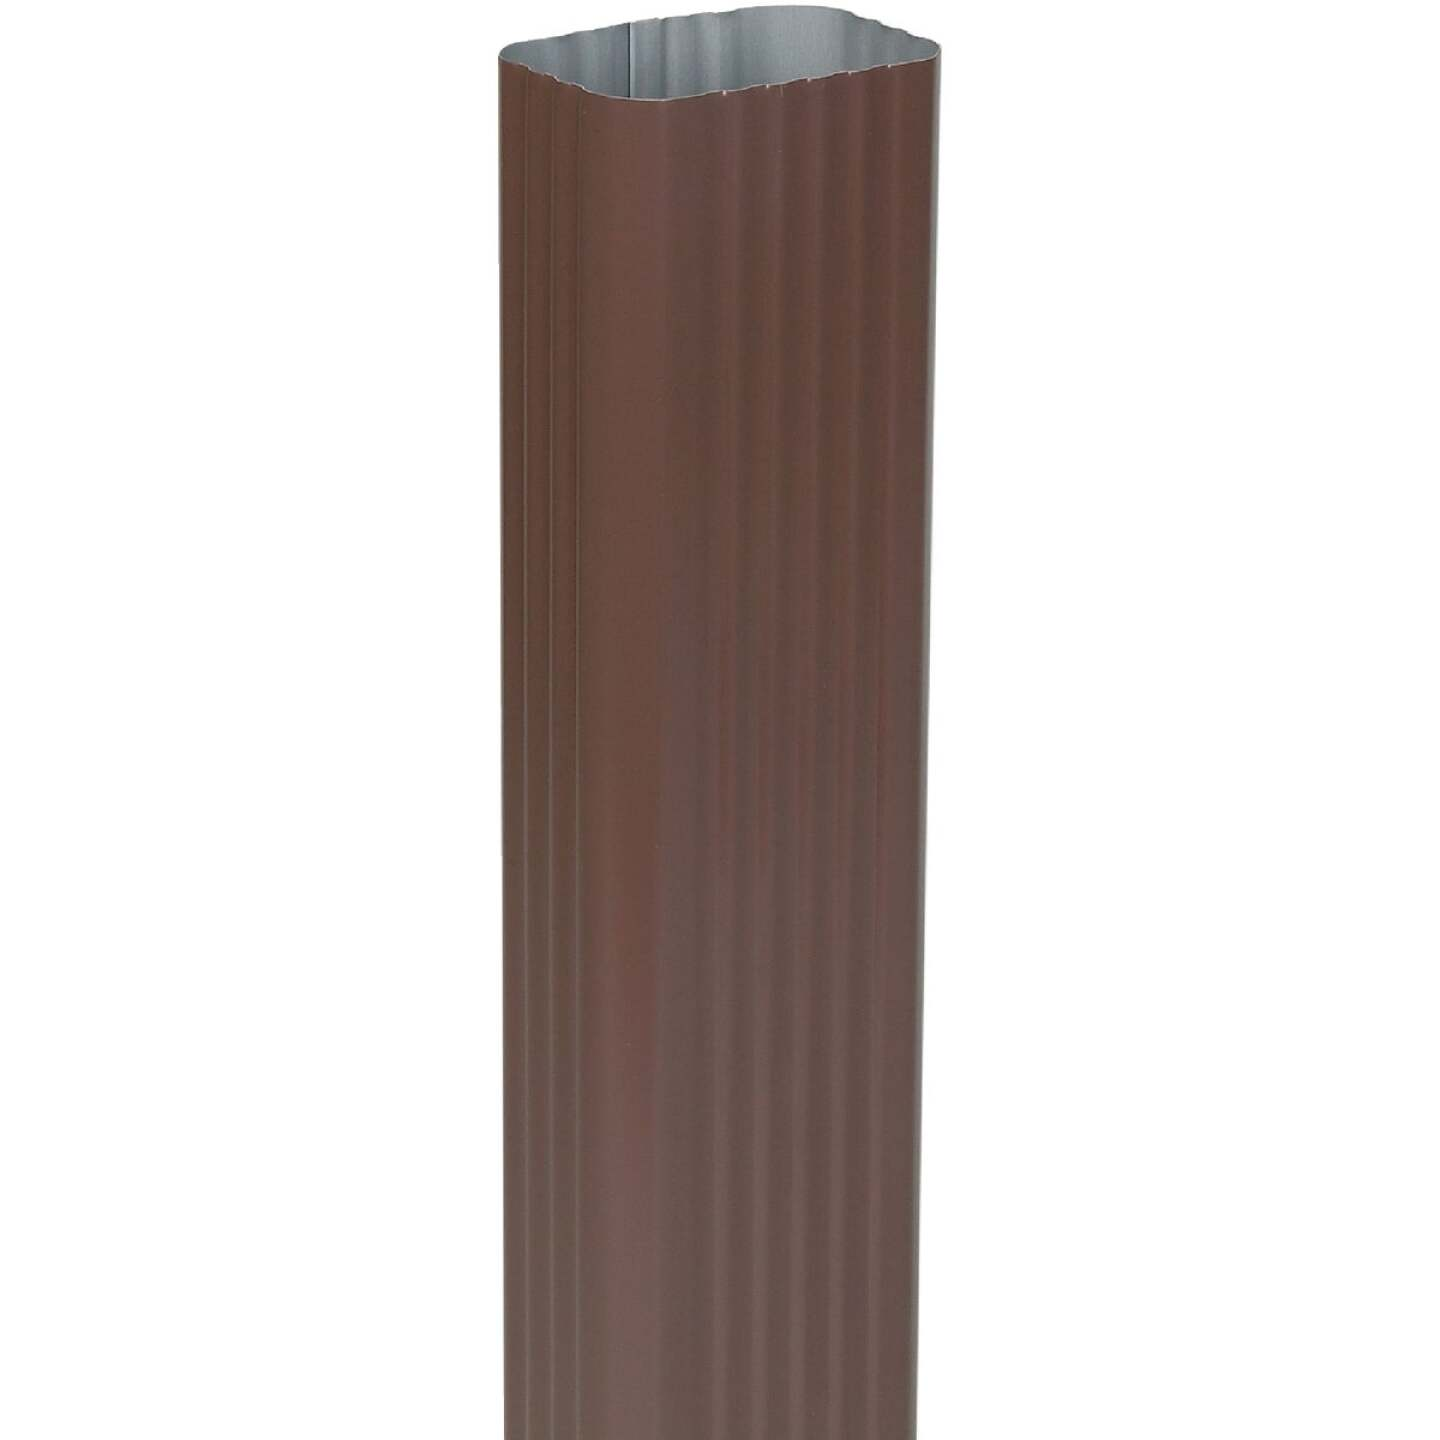 Spectra Metals 2 In. x 3 In. Brown Aluminum Downspout Image 1